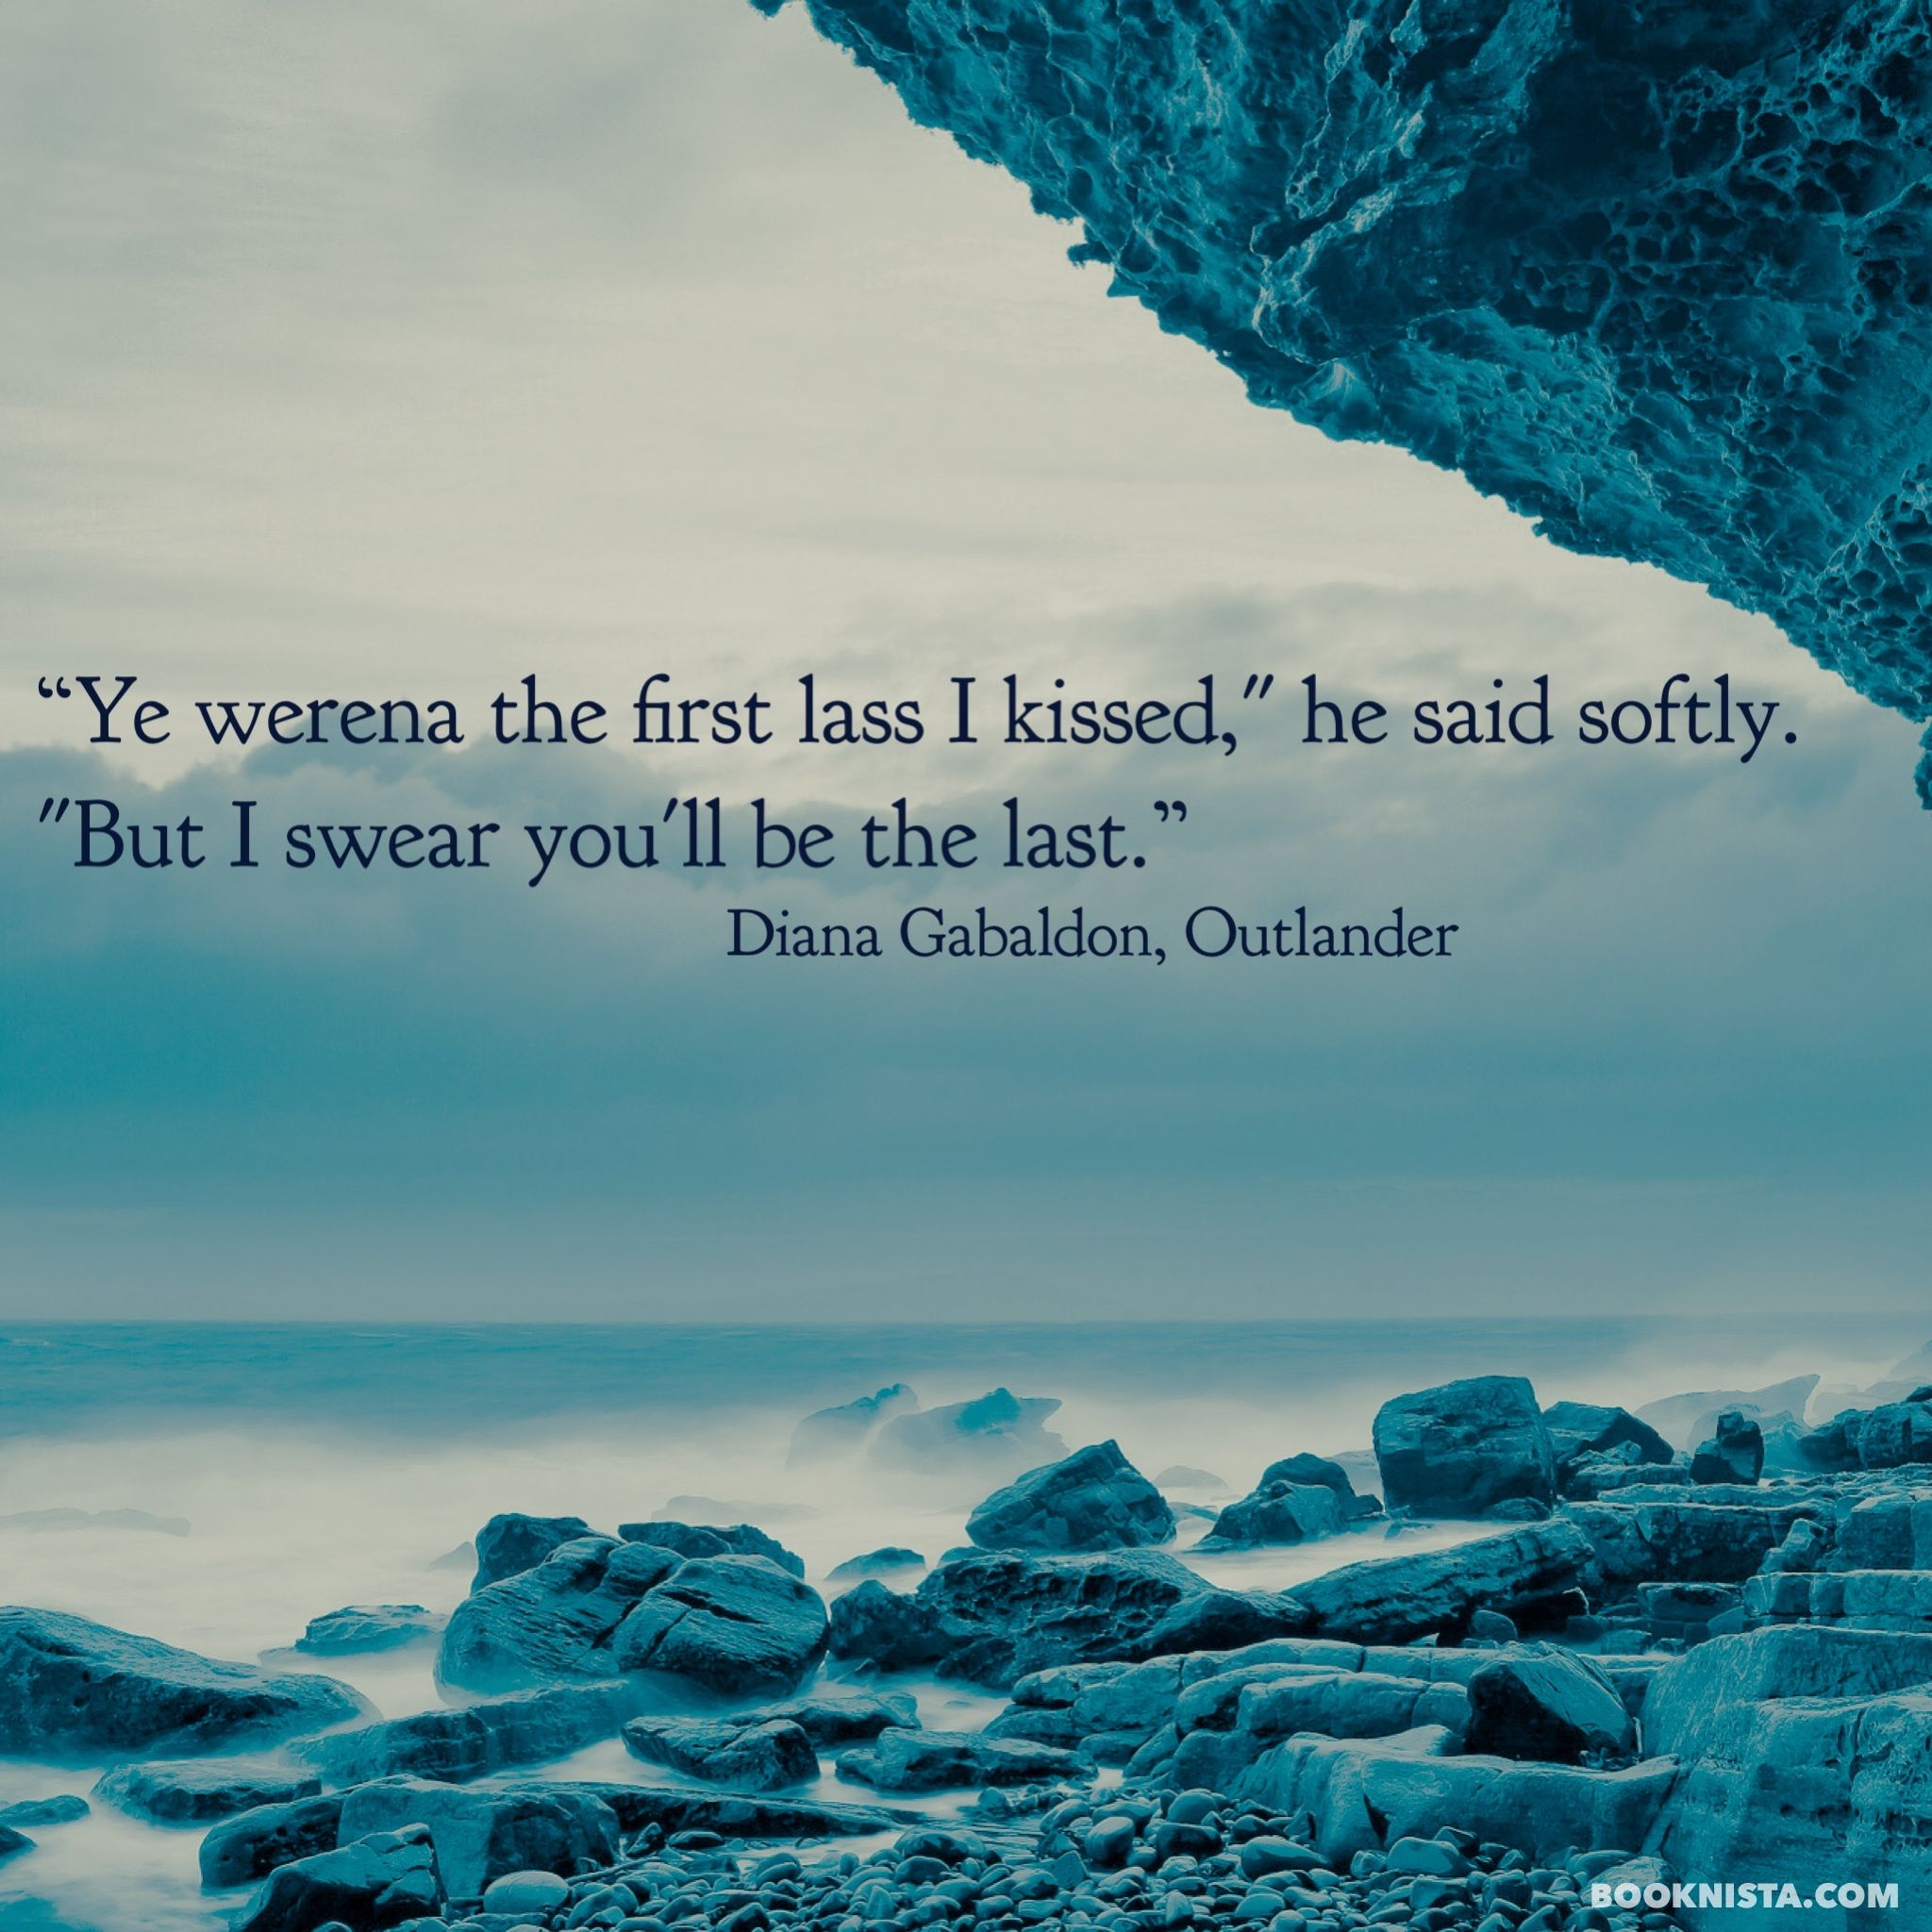 Highlander Quotes Great Book Quote From Outlanderdiana Gabaldon Hot